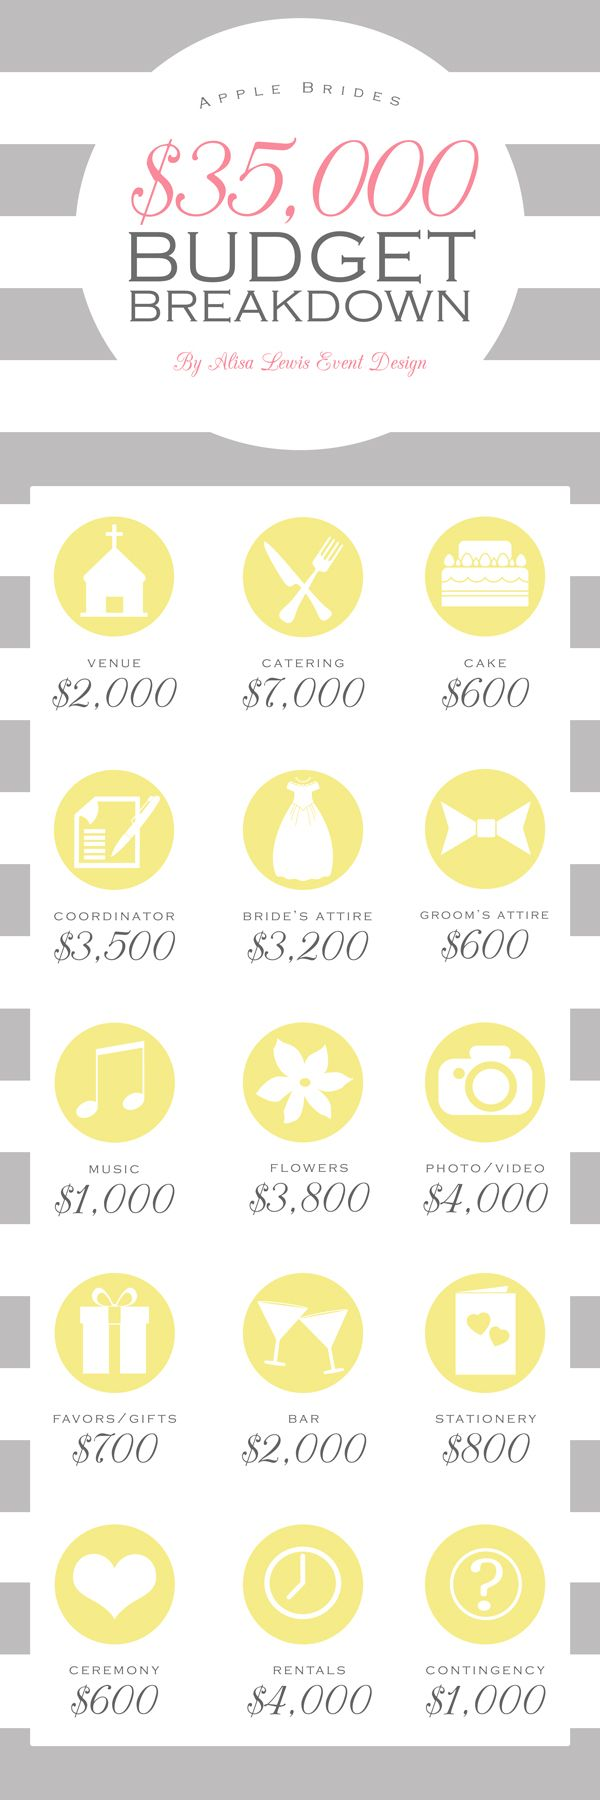 budget breakdown for a 35000 wedding